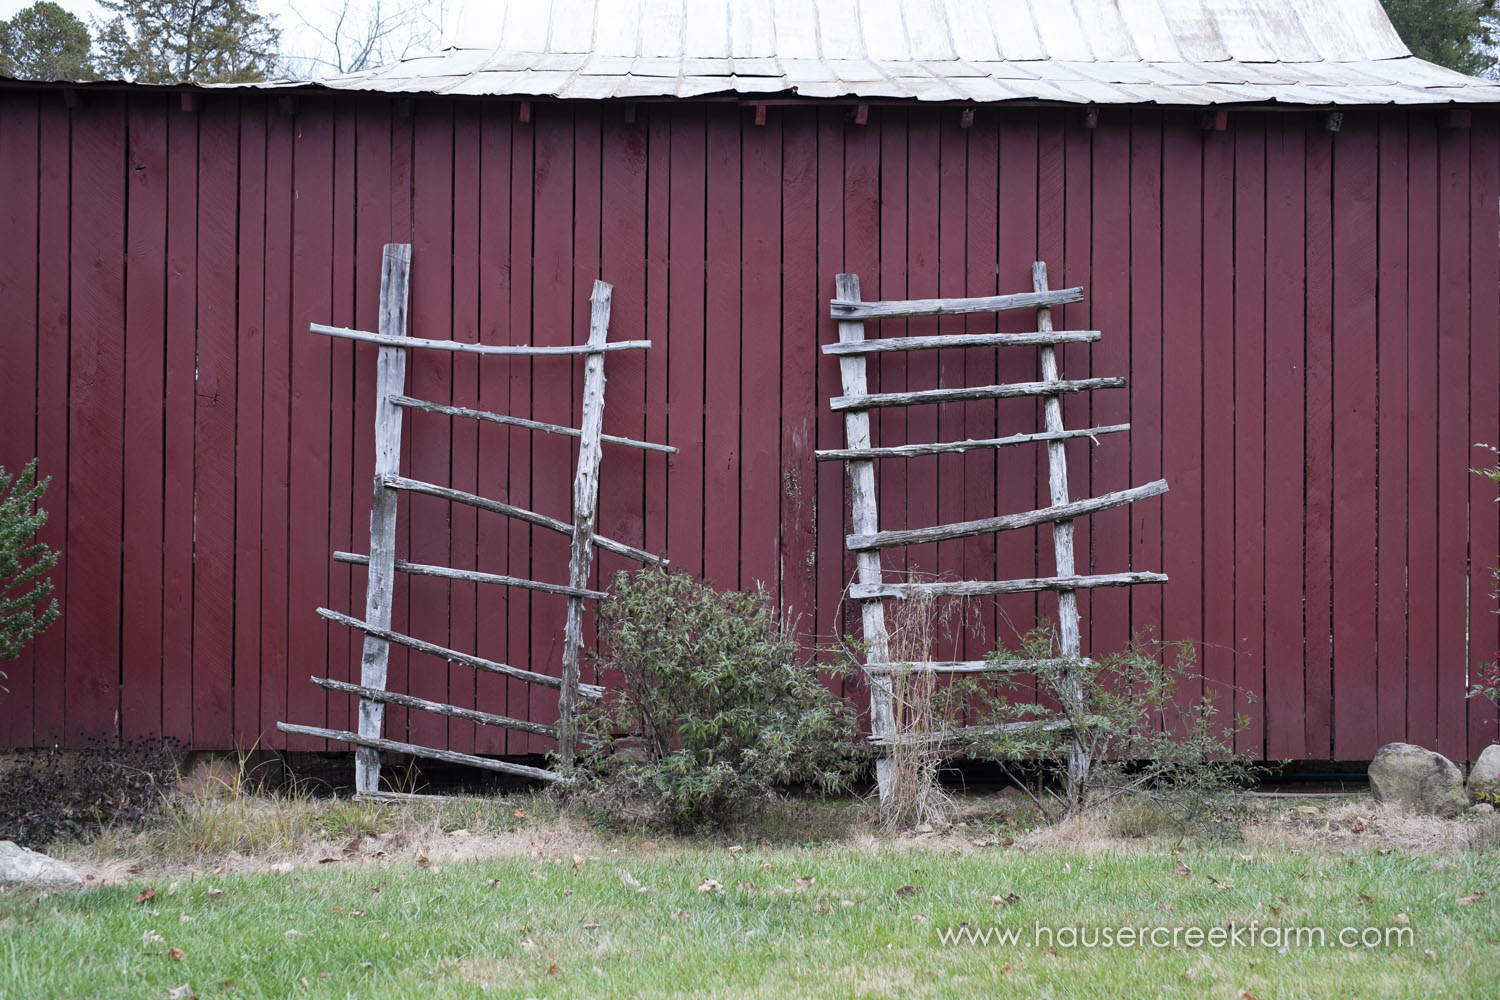 rustic-ladders-leaning-against-red-wall-of-farm-granary-photo-by-chris-fowler-1179color.jpg